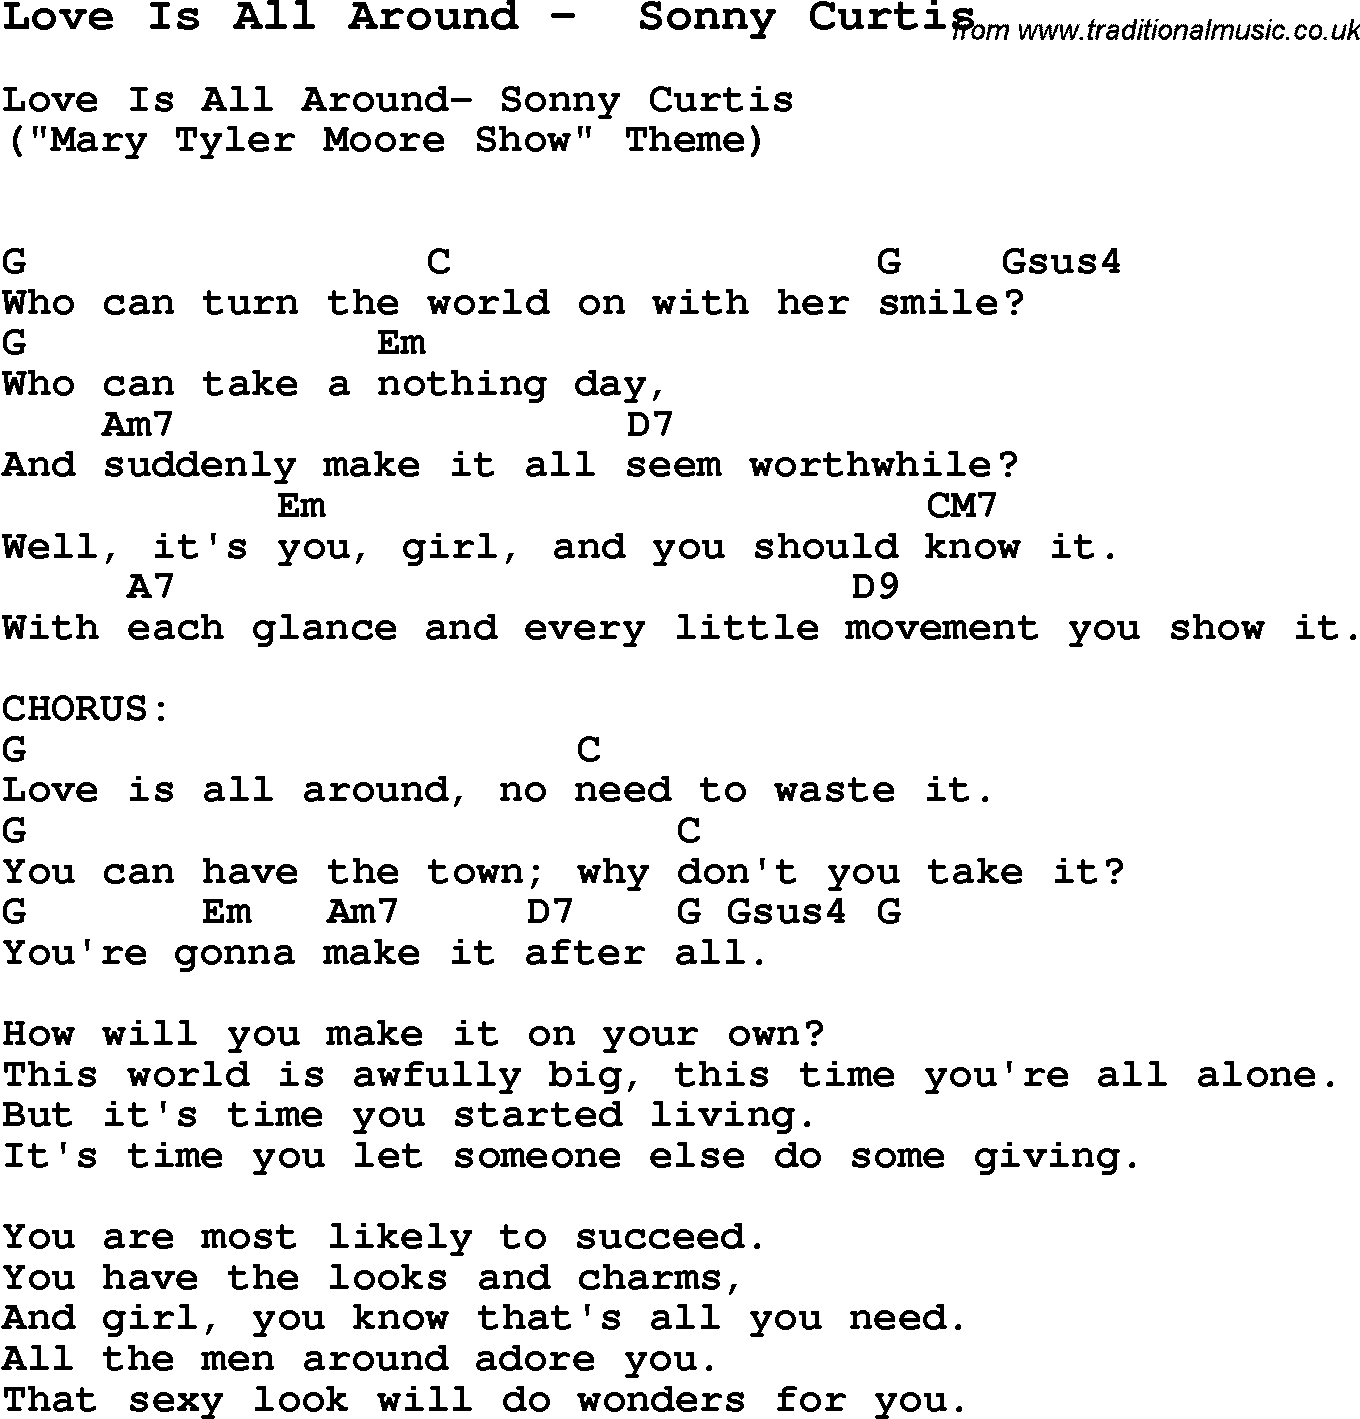 Song love is all around by sonny curtis song lyric for vocal song love is all around by sonny curtis with lyrics for vocal performance and accompaniment hexwebz Choice Image